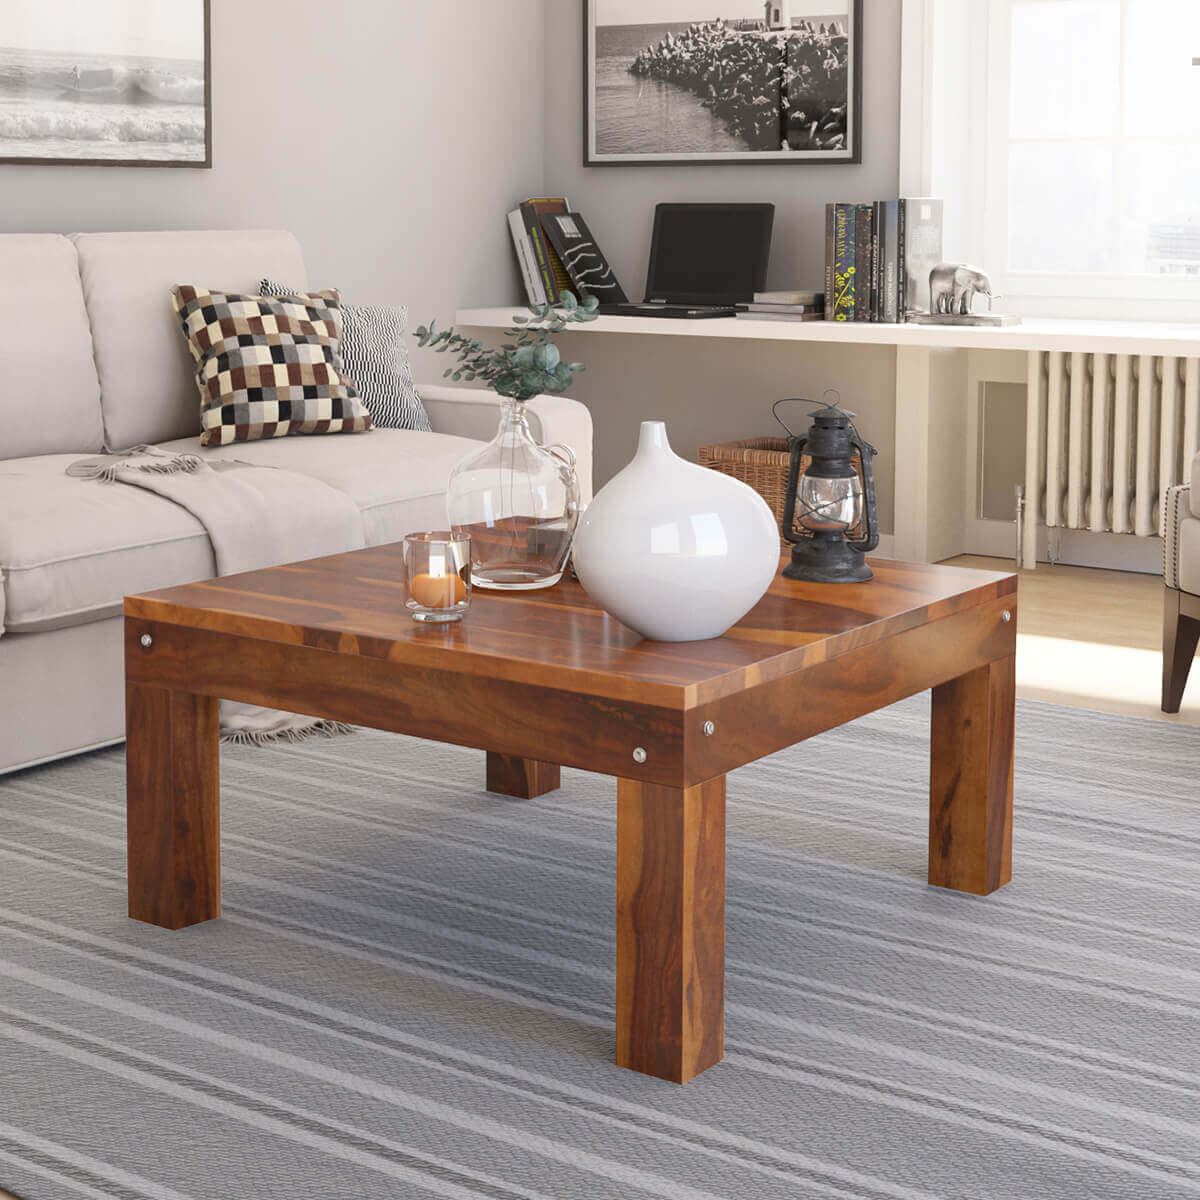 Solid wood traditional rustic square coffee table for Large wood coffee table square